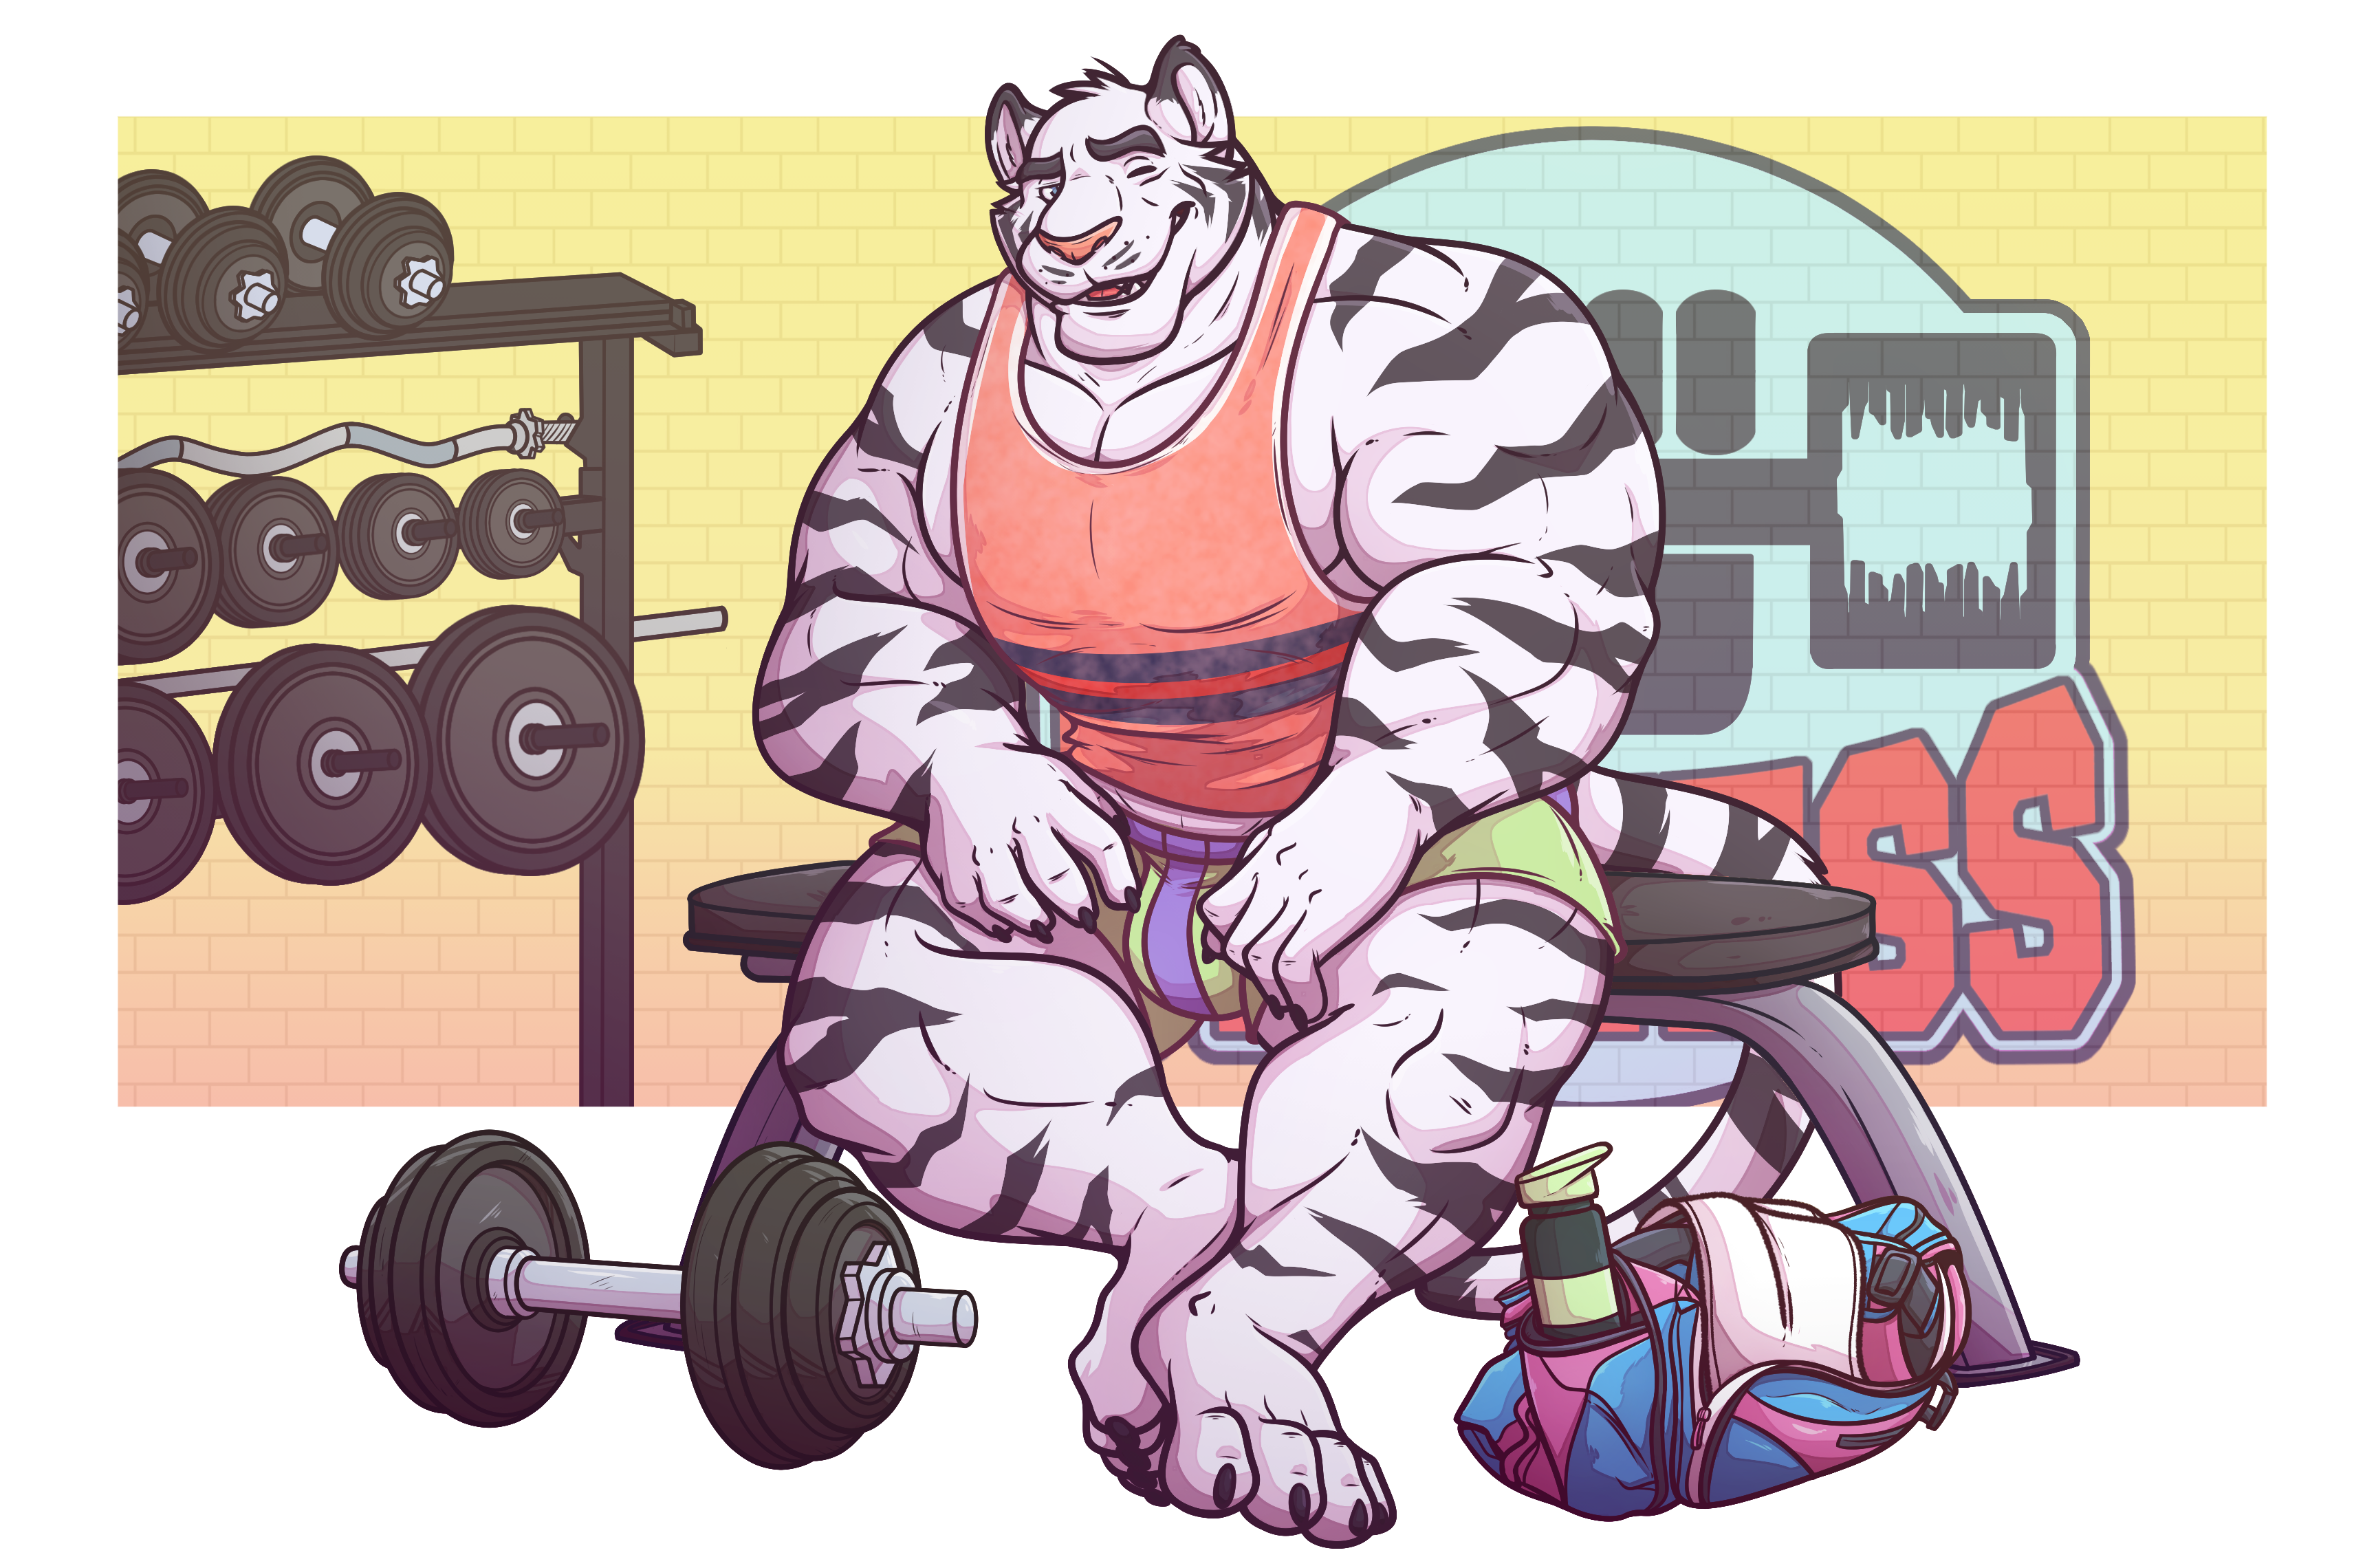 s gym tiger. Dumbbell clipart male fitness